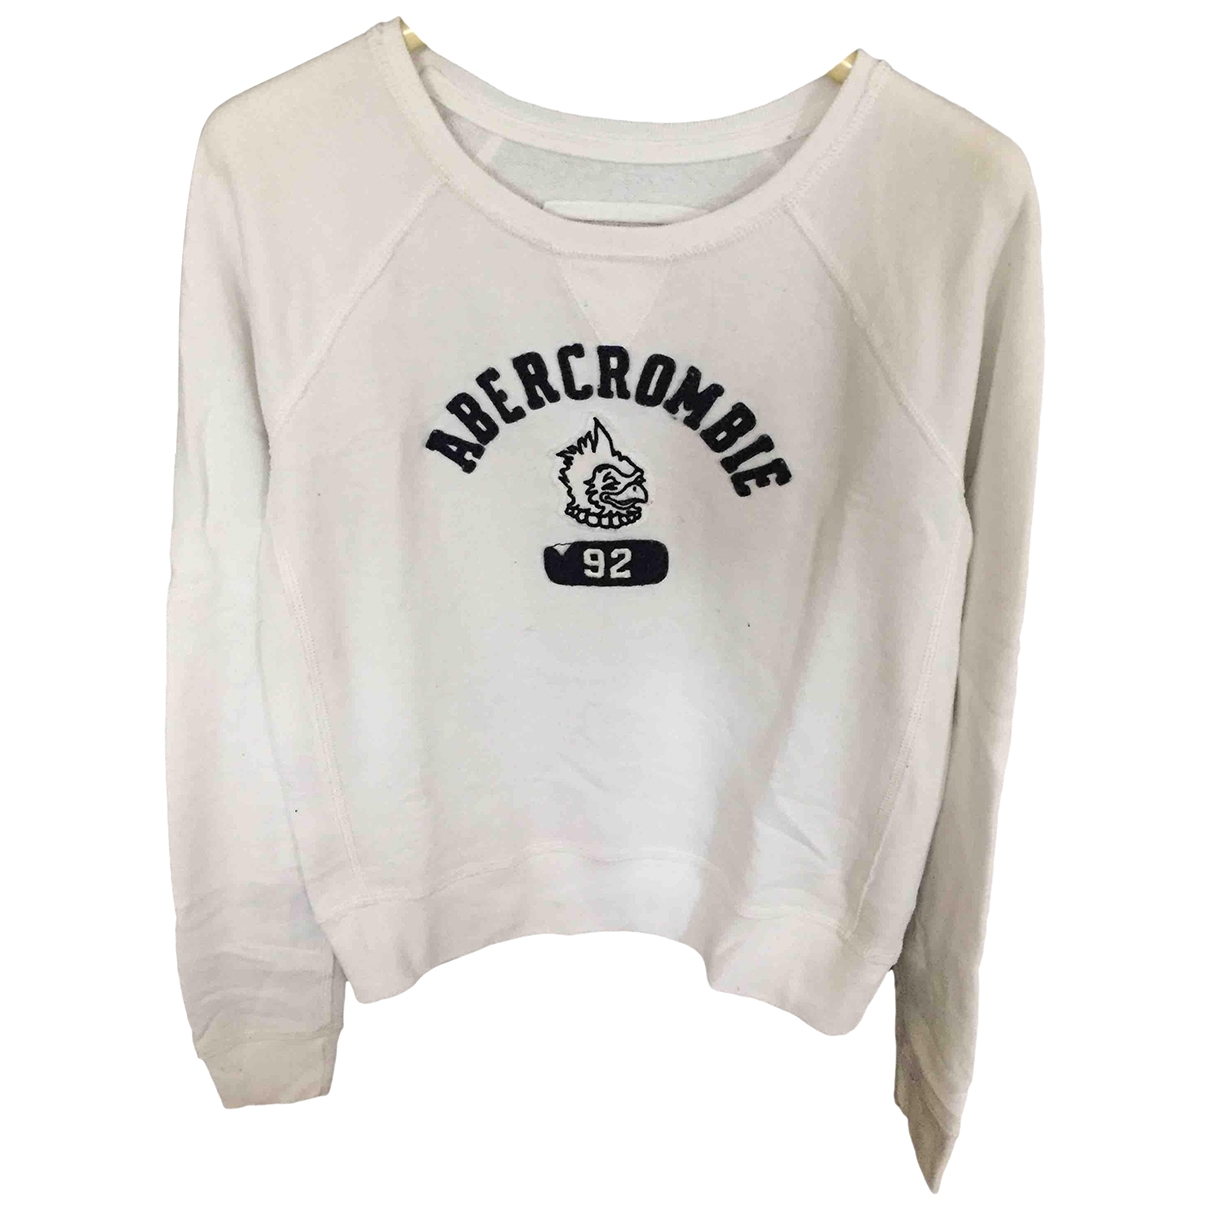 Abercrombie & Fitch \N White Cotton Knitwear for Kids 20 years - XL FR